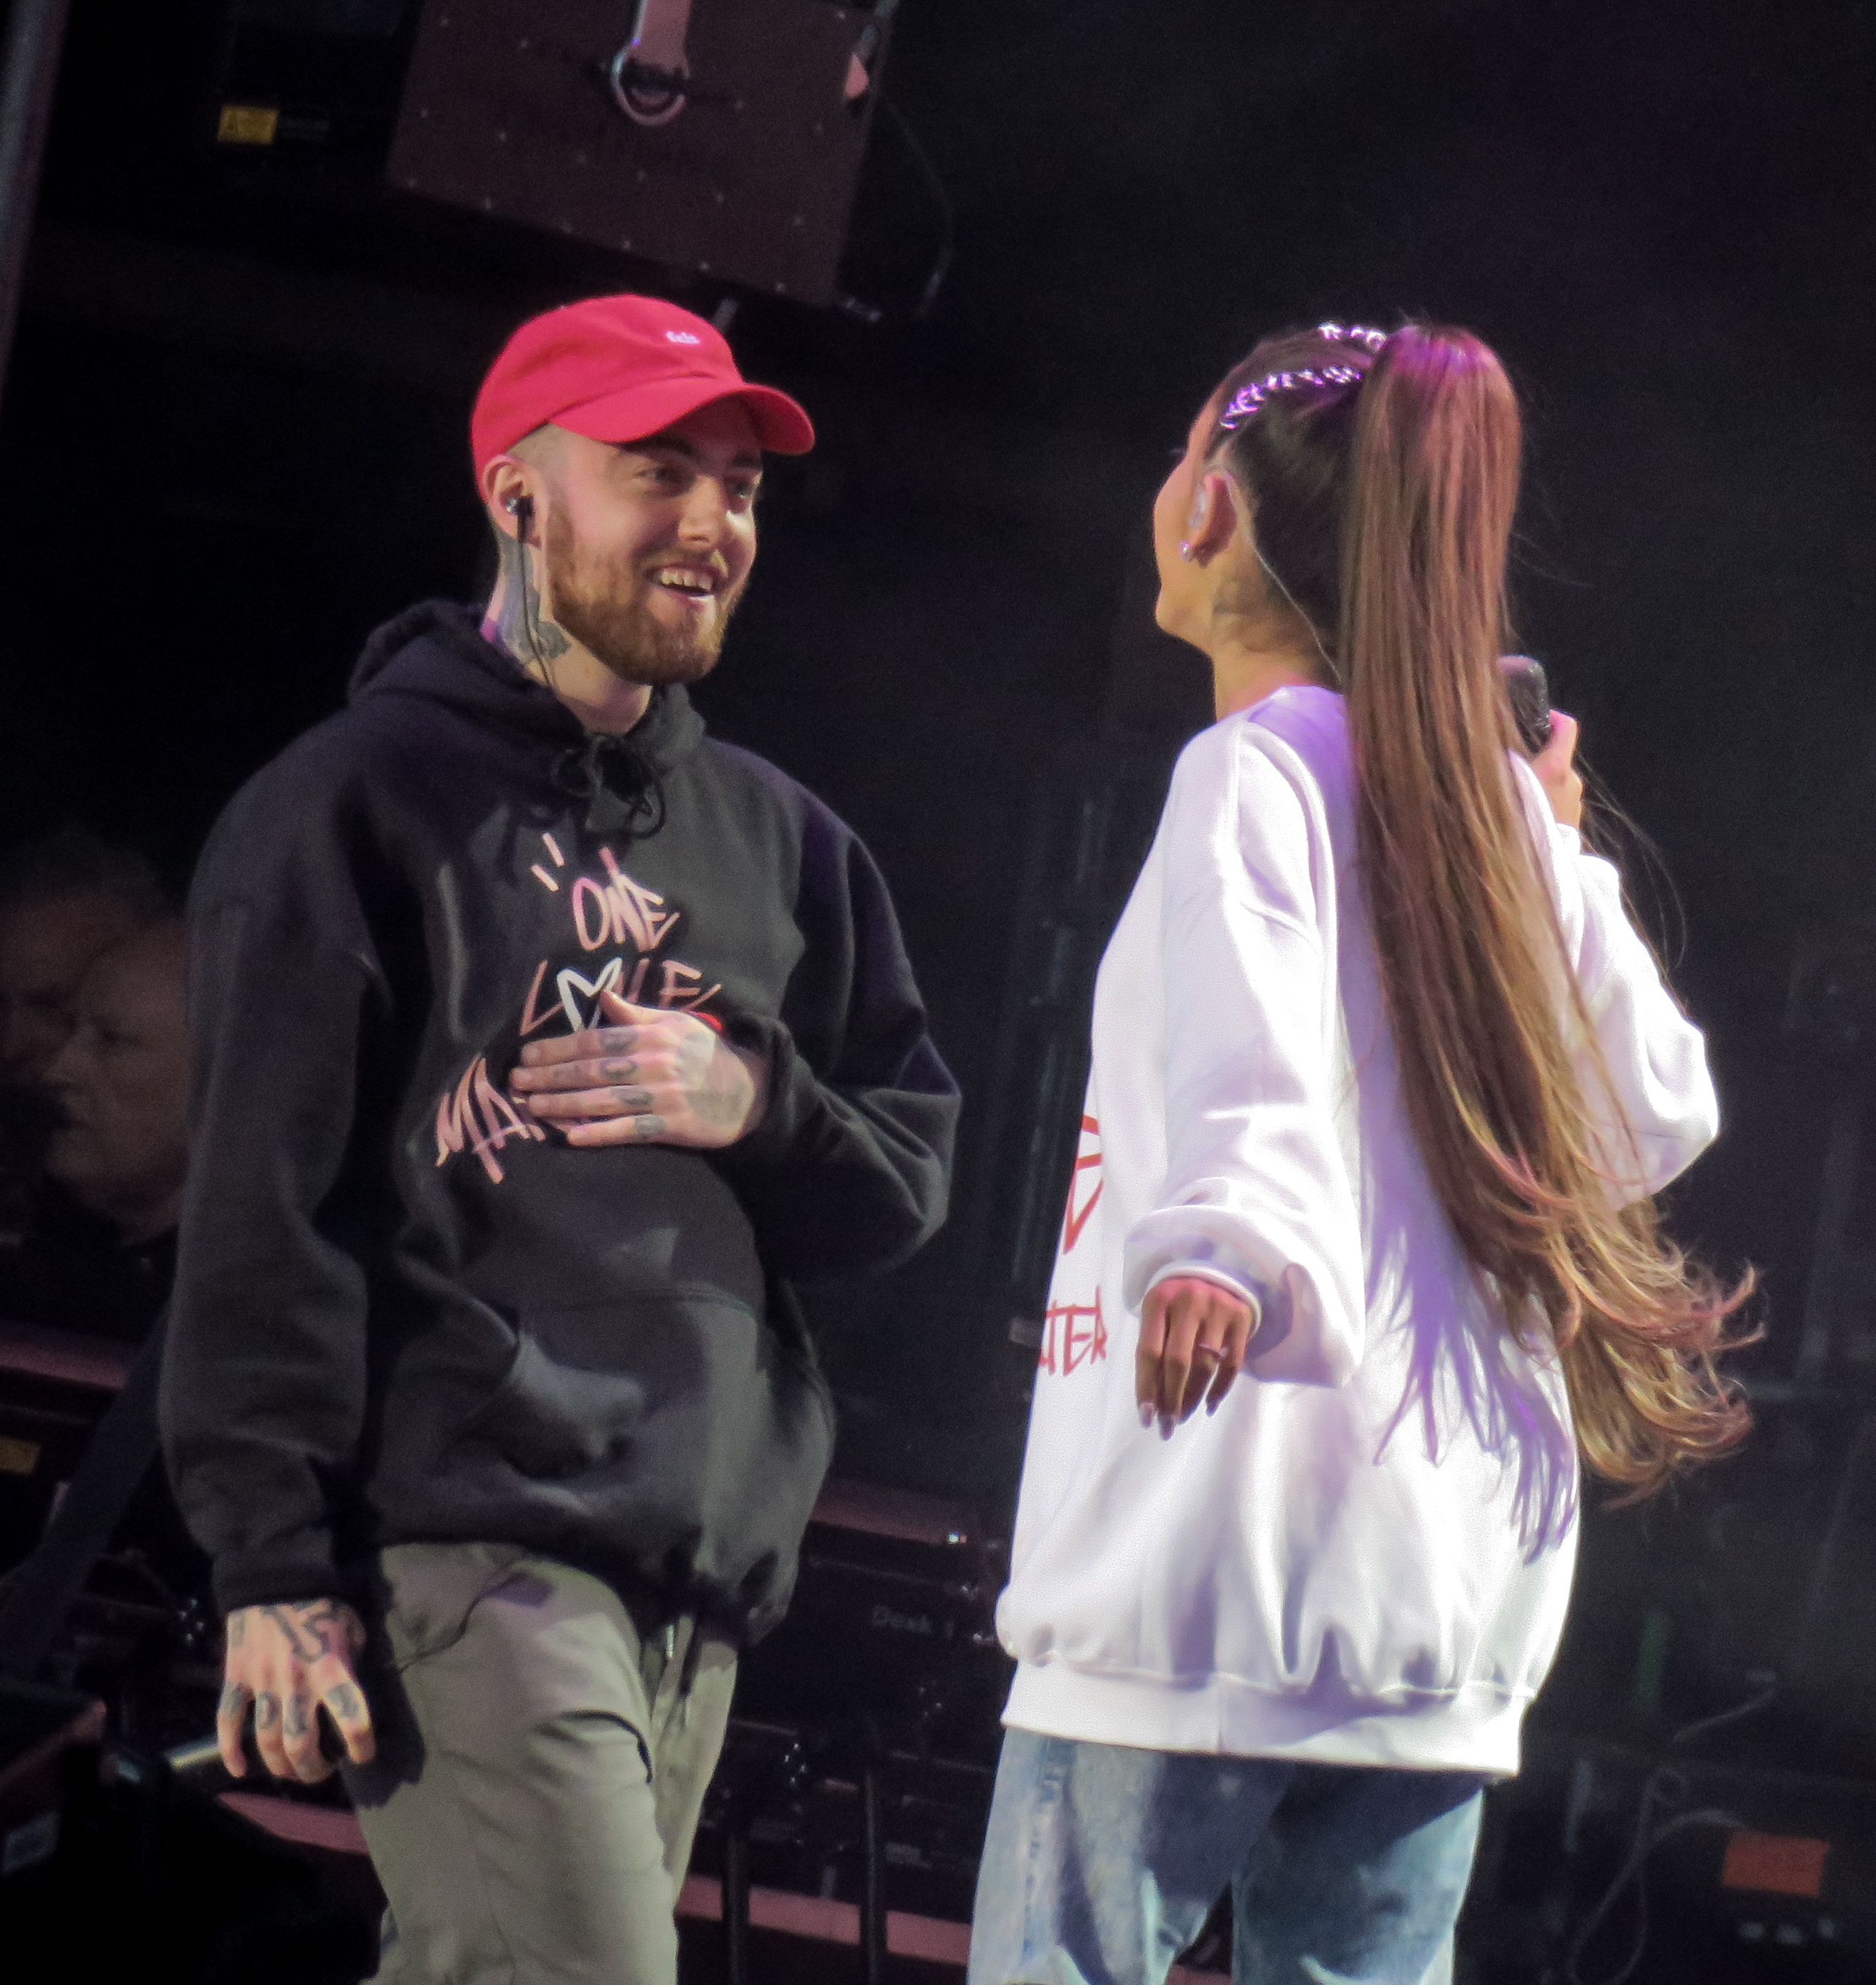 Ariana Grande and Mac Miller at the One Love Manchester concert. June 4, 2017. Credit: WENN.com